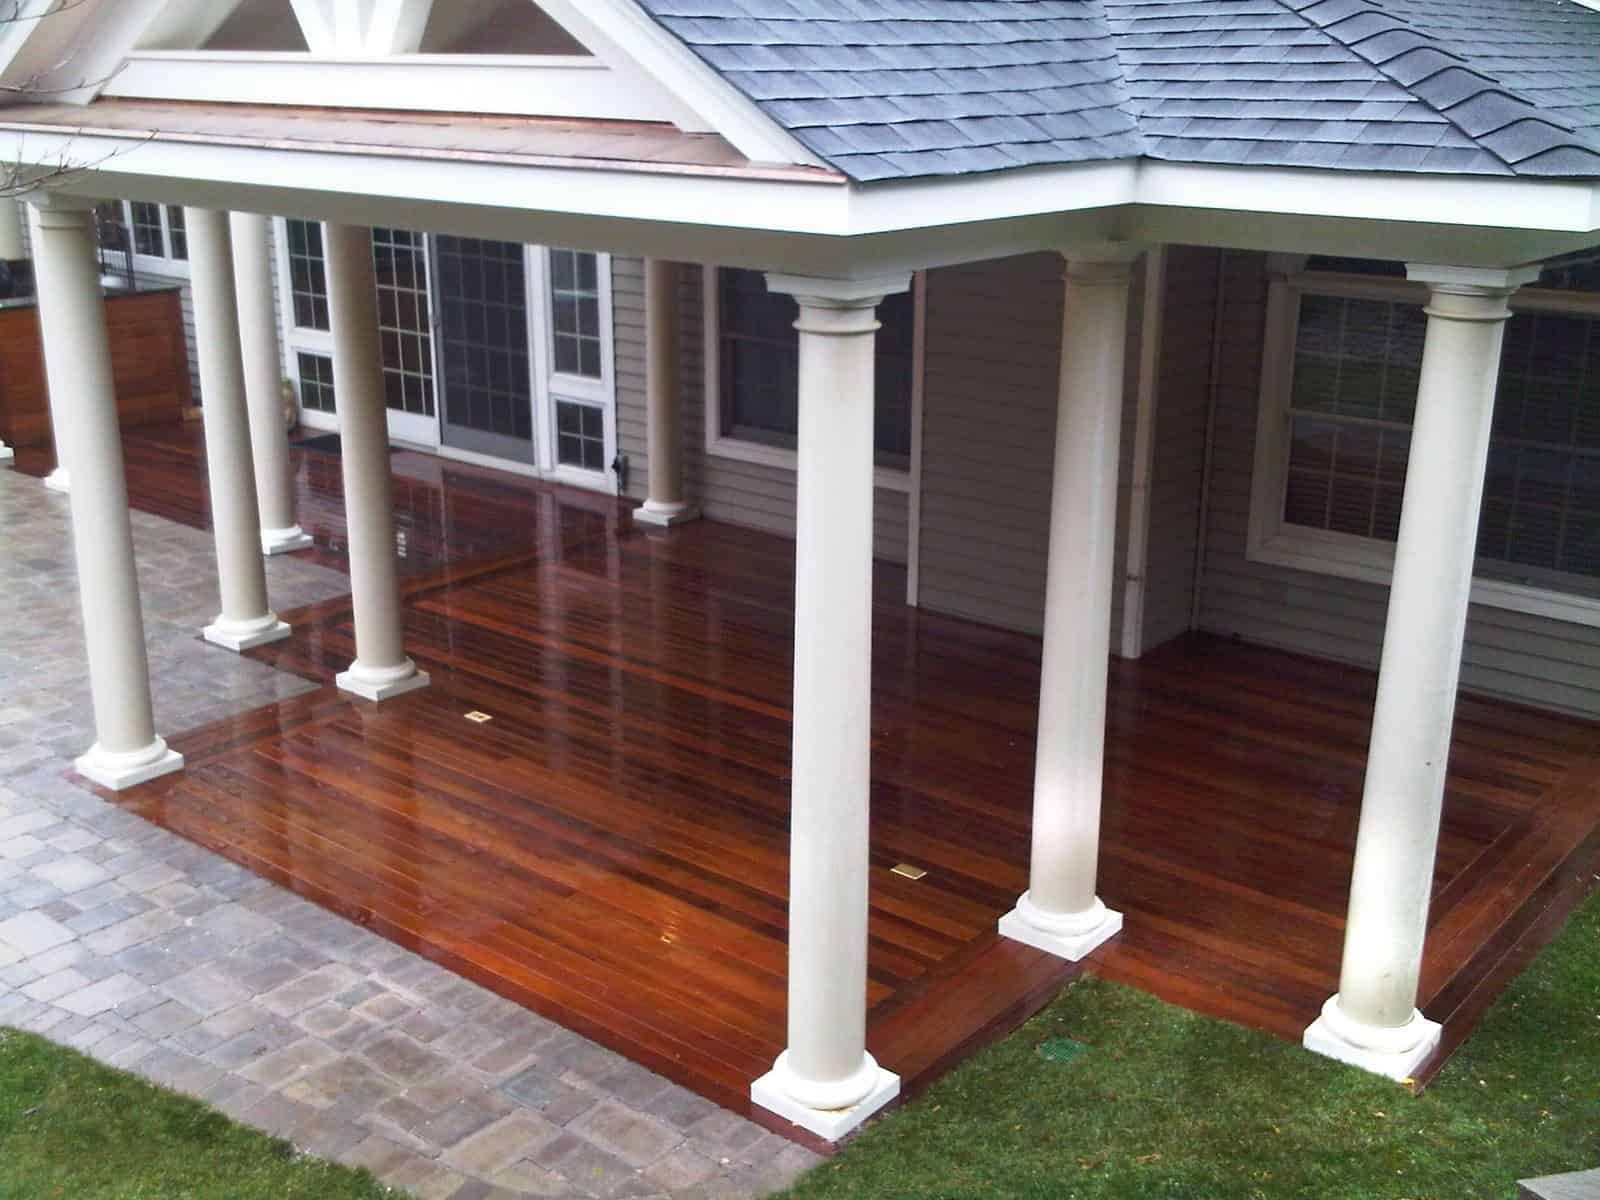 17' x 23' Outdoor Room with pitched roof and columns - Roslyn, Long Island NY